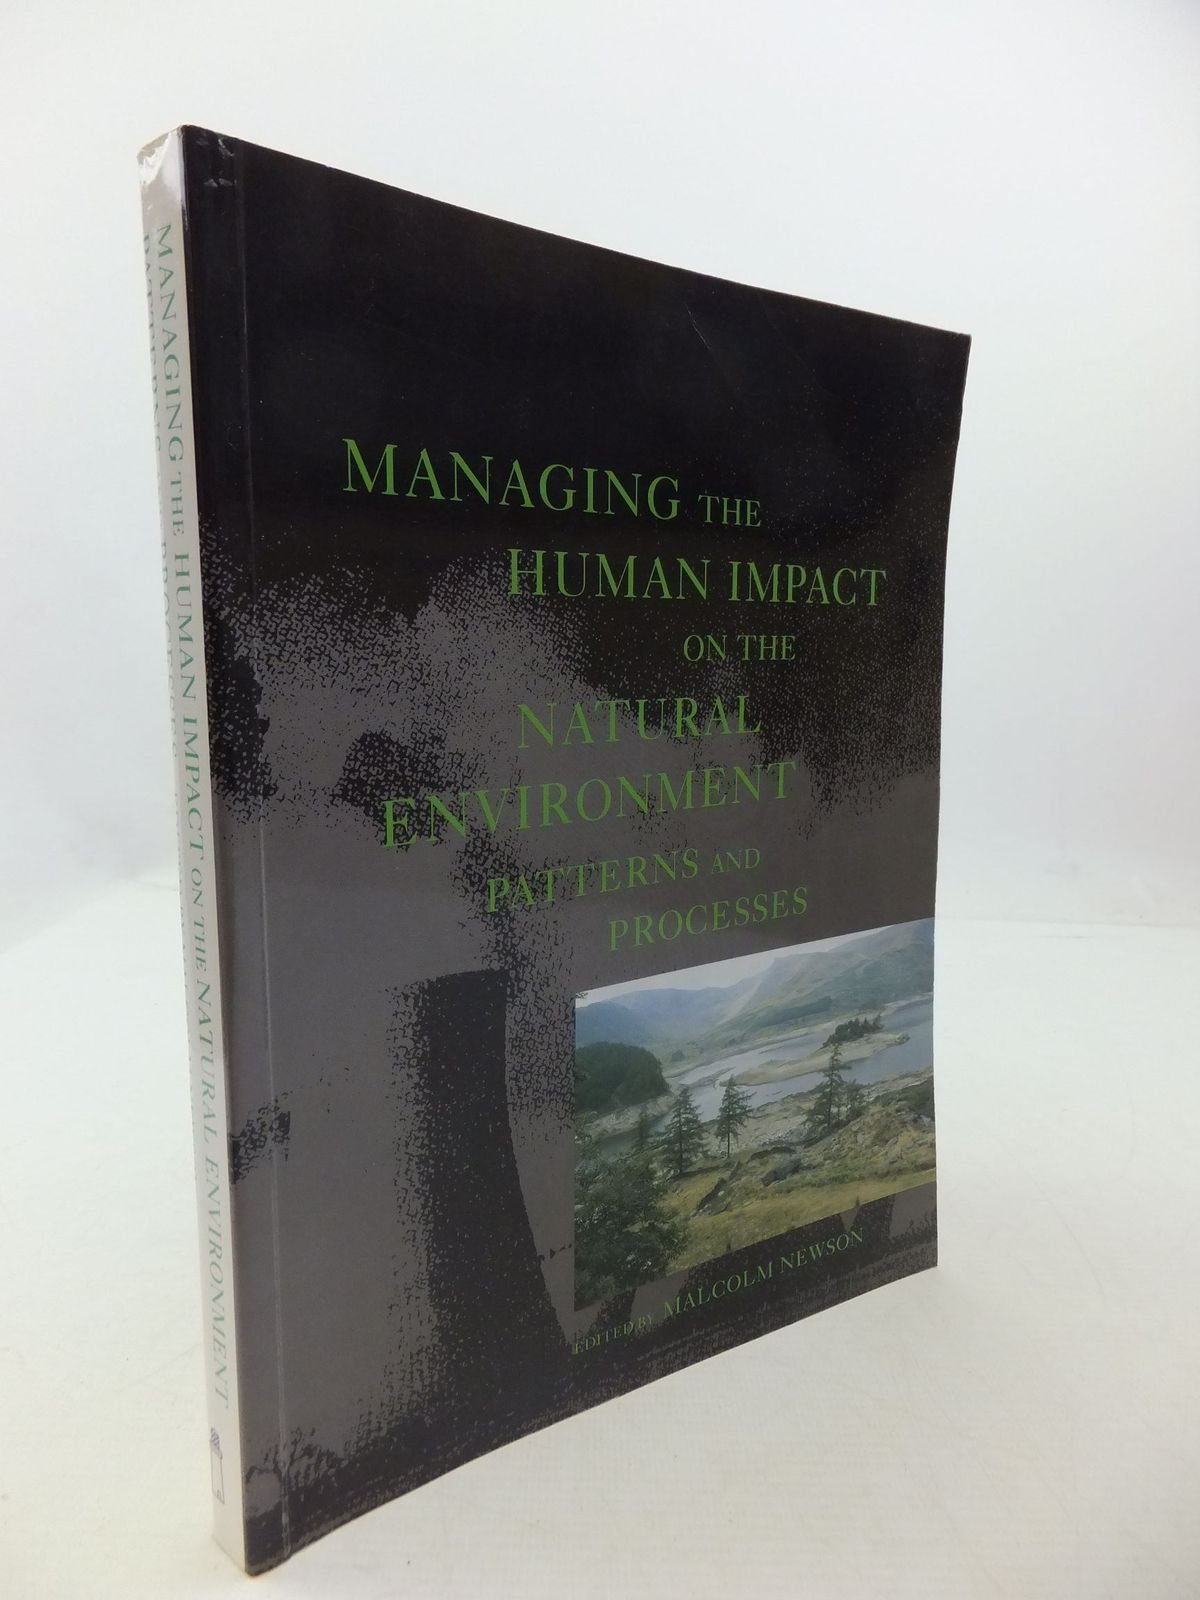 Photo of MANAGING THE HUMAN IMPACT ON THE NATURAL ENVIRONMENT PATTERNS AND PROCESSES- Stock Number: 2111730